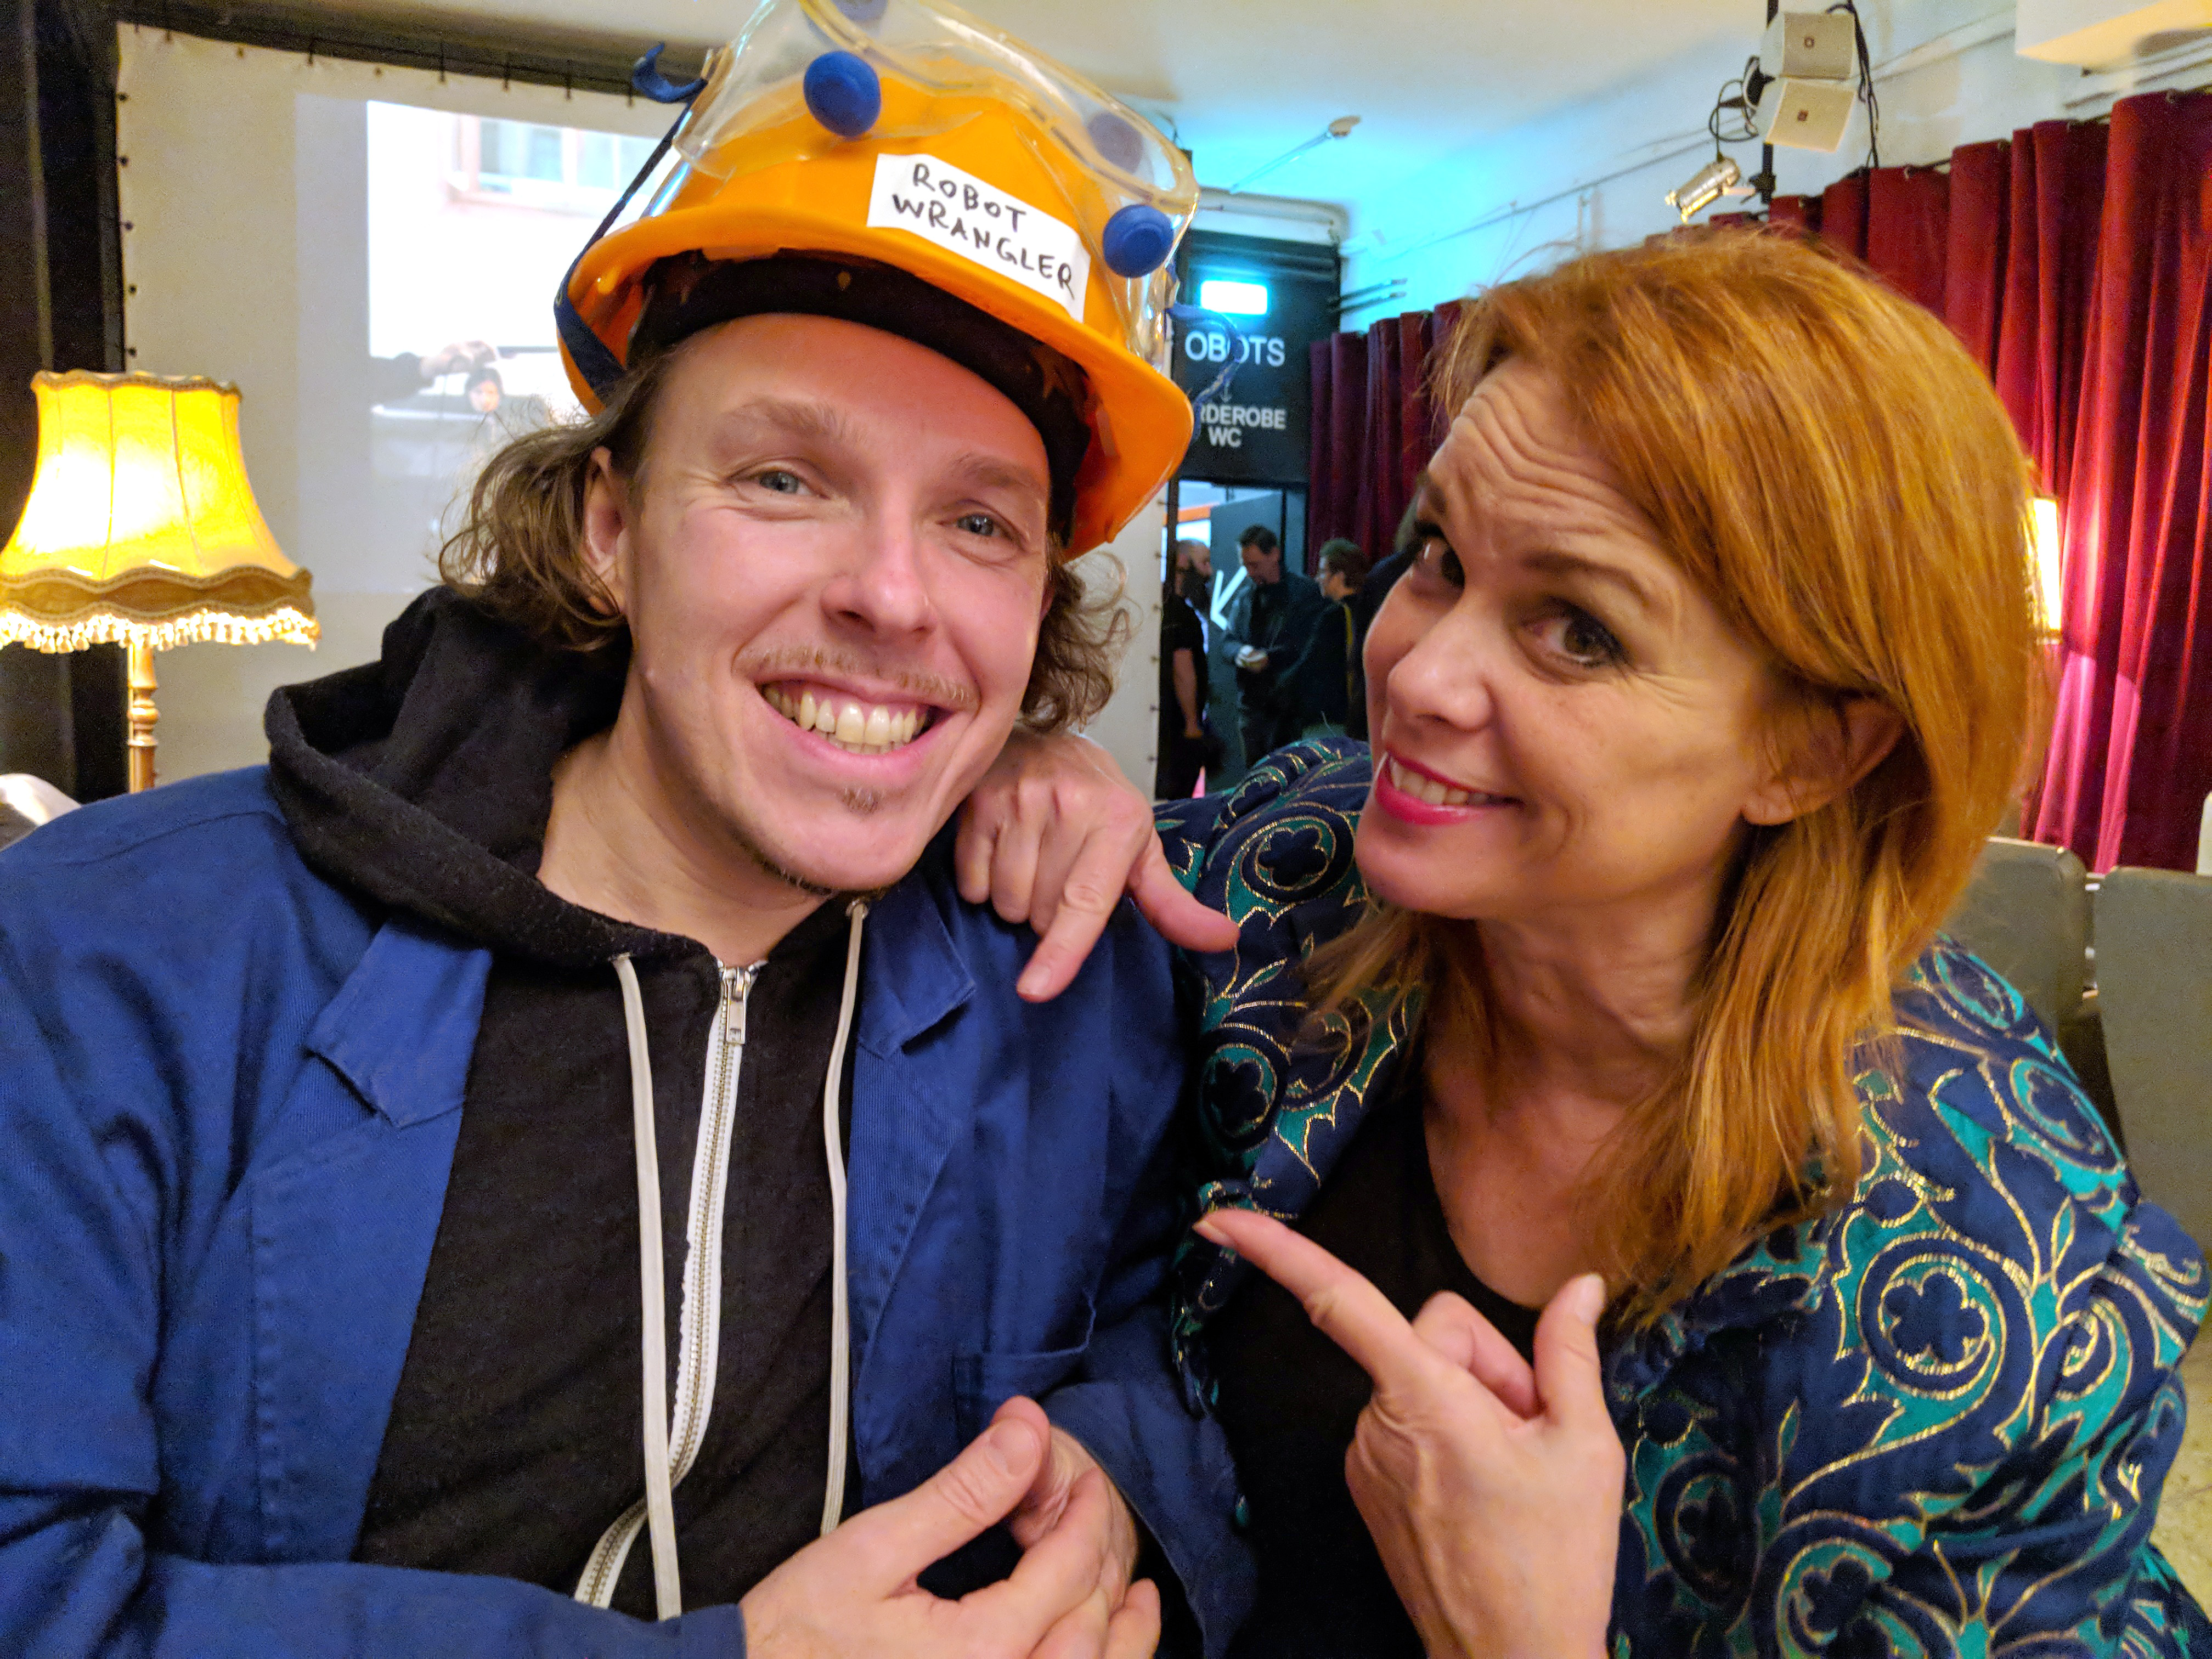 Johannes Grenzfurthner and Chase Masterson